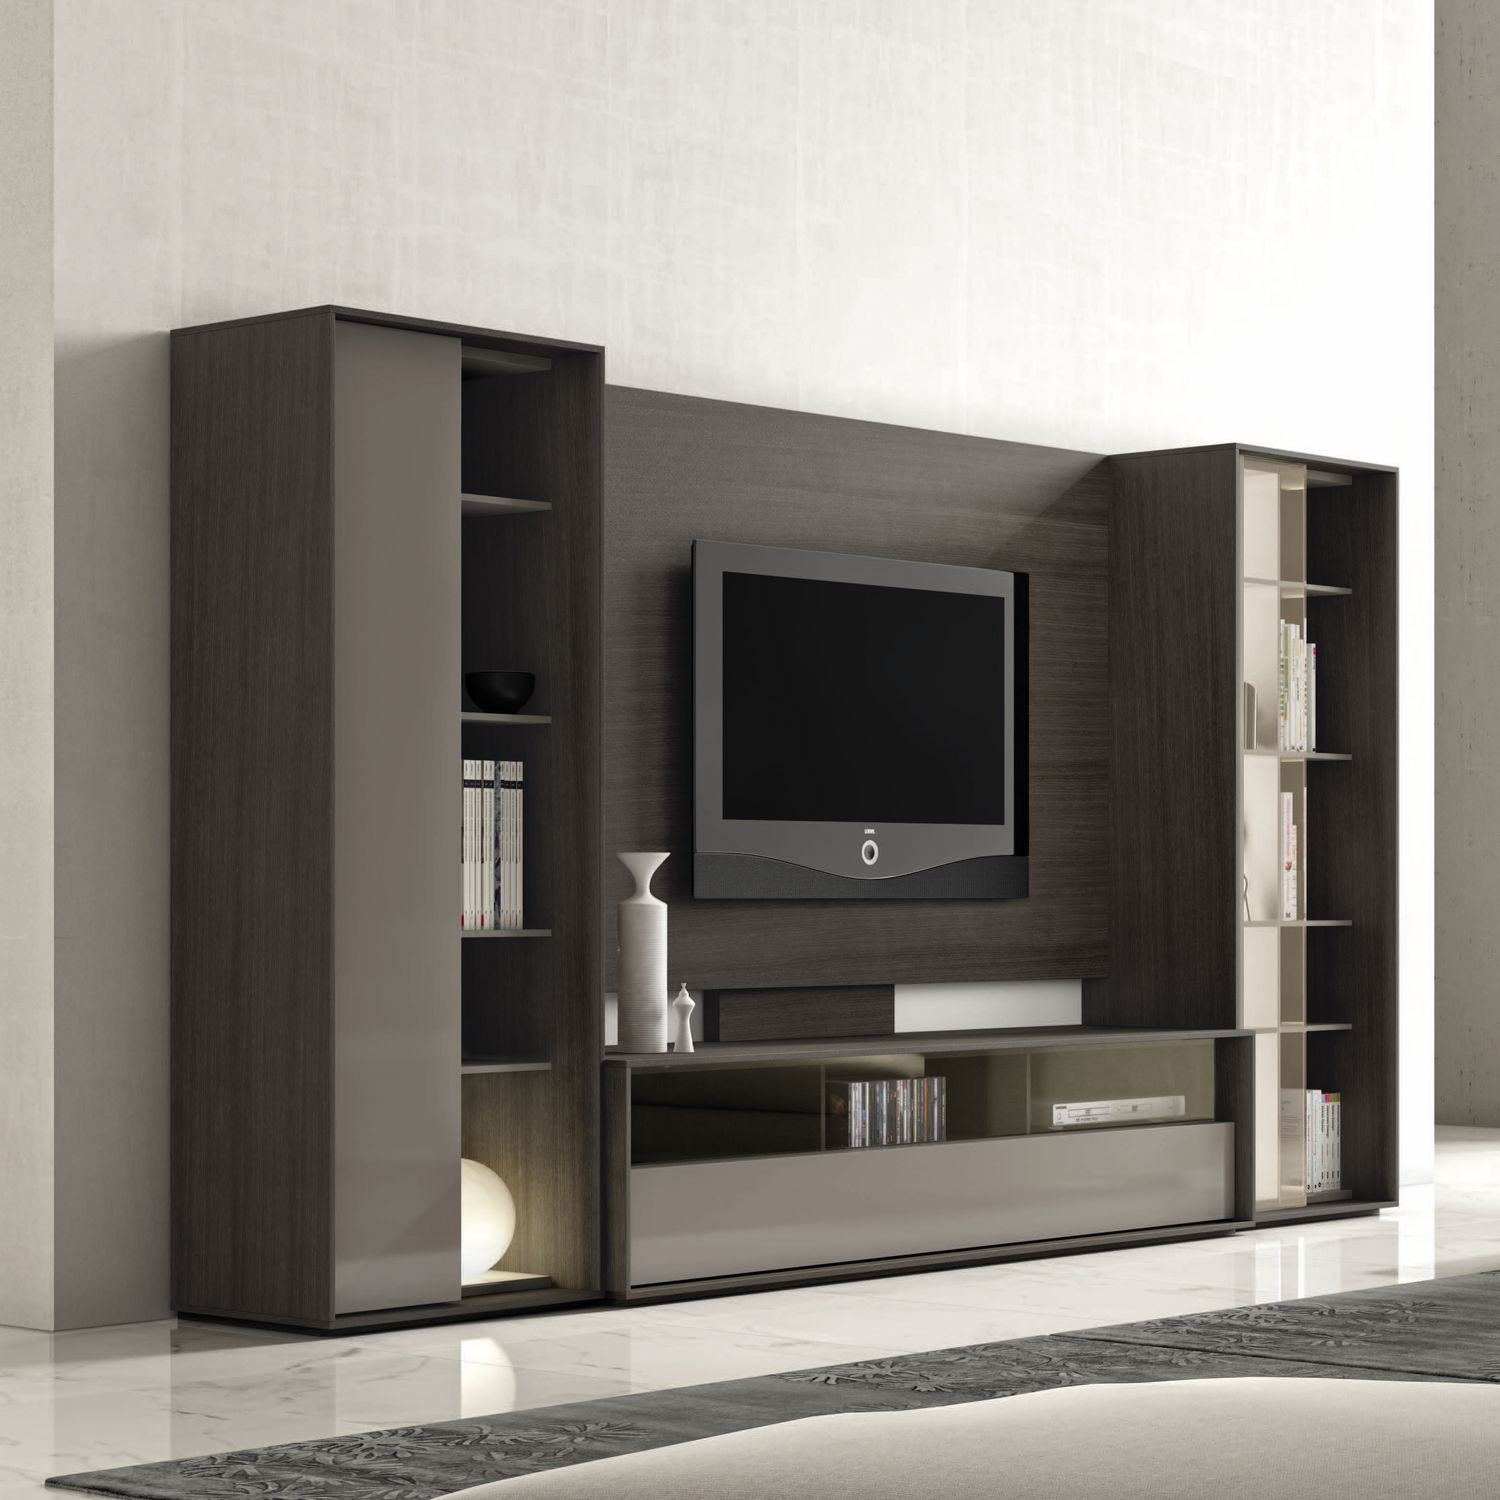 Contemporary TV wall unit / wooden / lacquered wood - NEXT : 220 - A ...